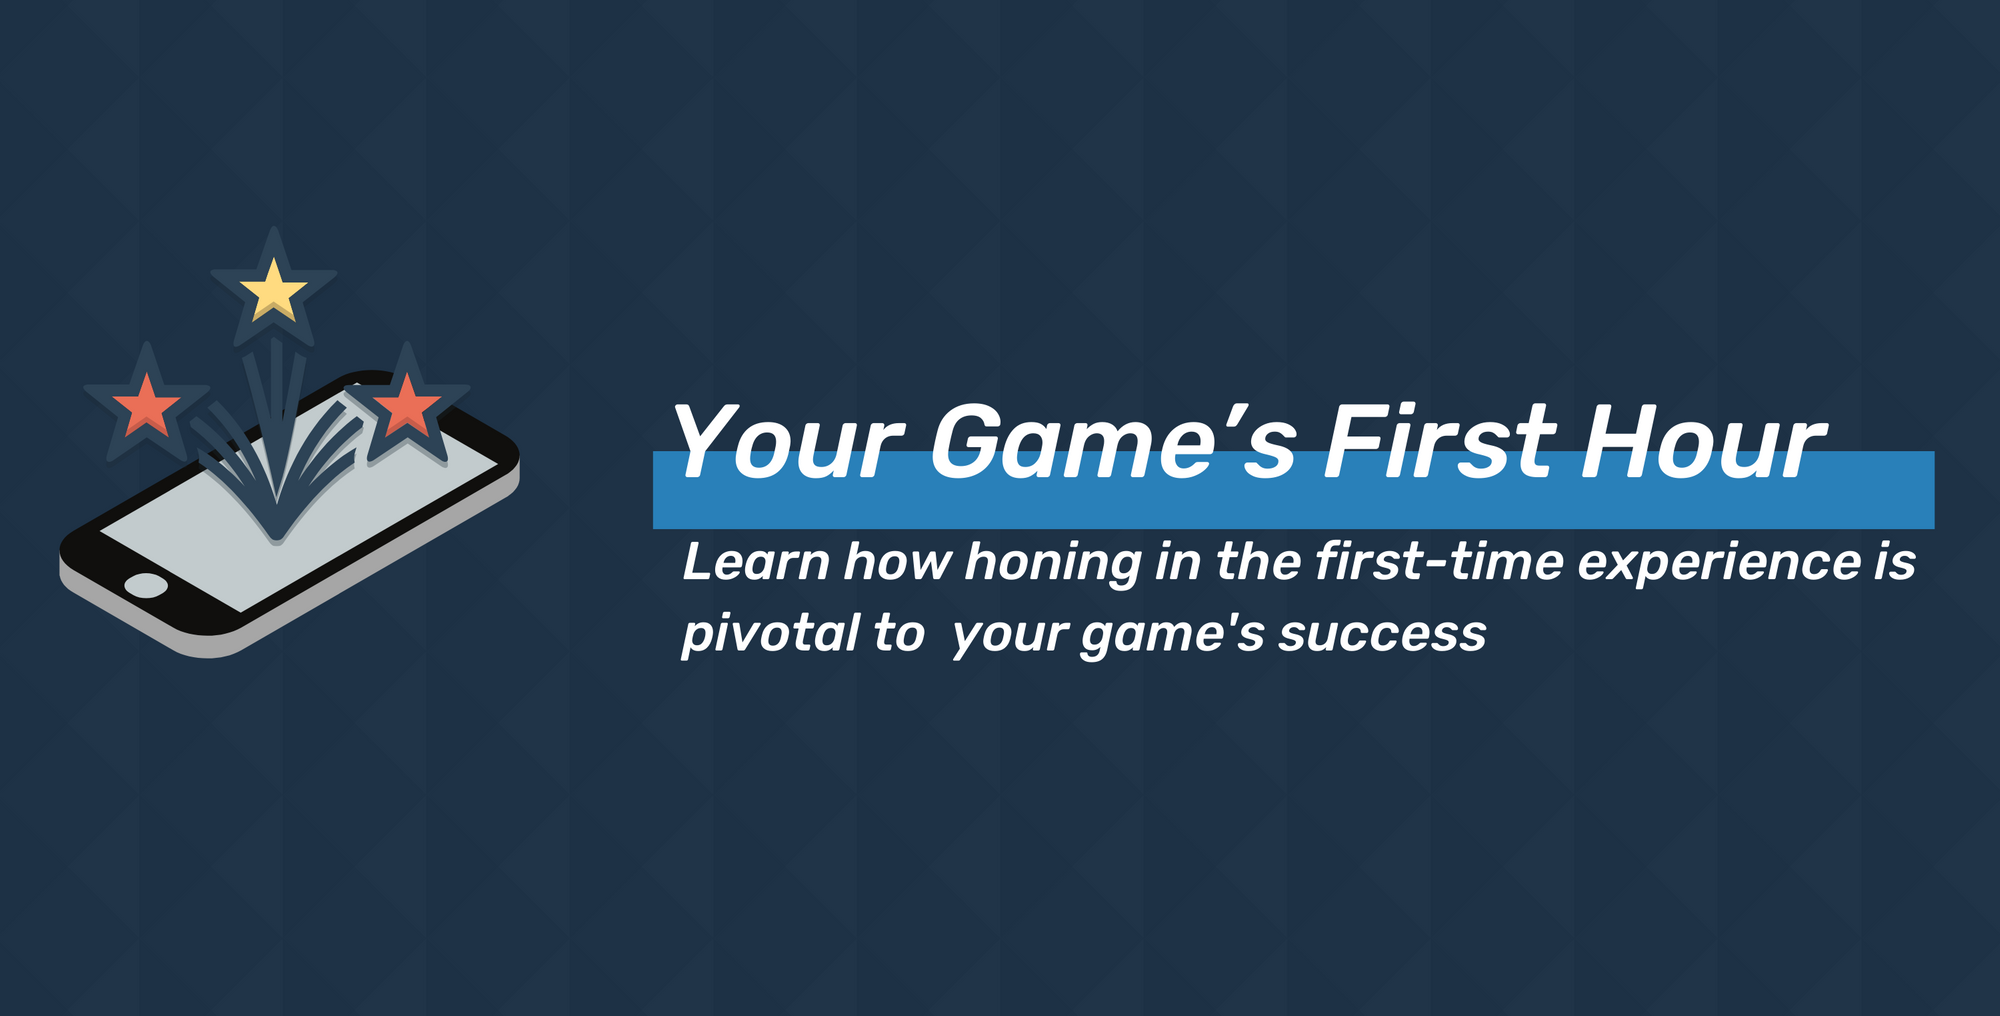 Your Game's First Hour: How Honing in the First-Time Experience is Pivotal to Your Game's Success